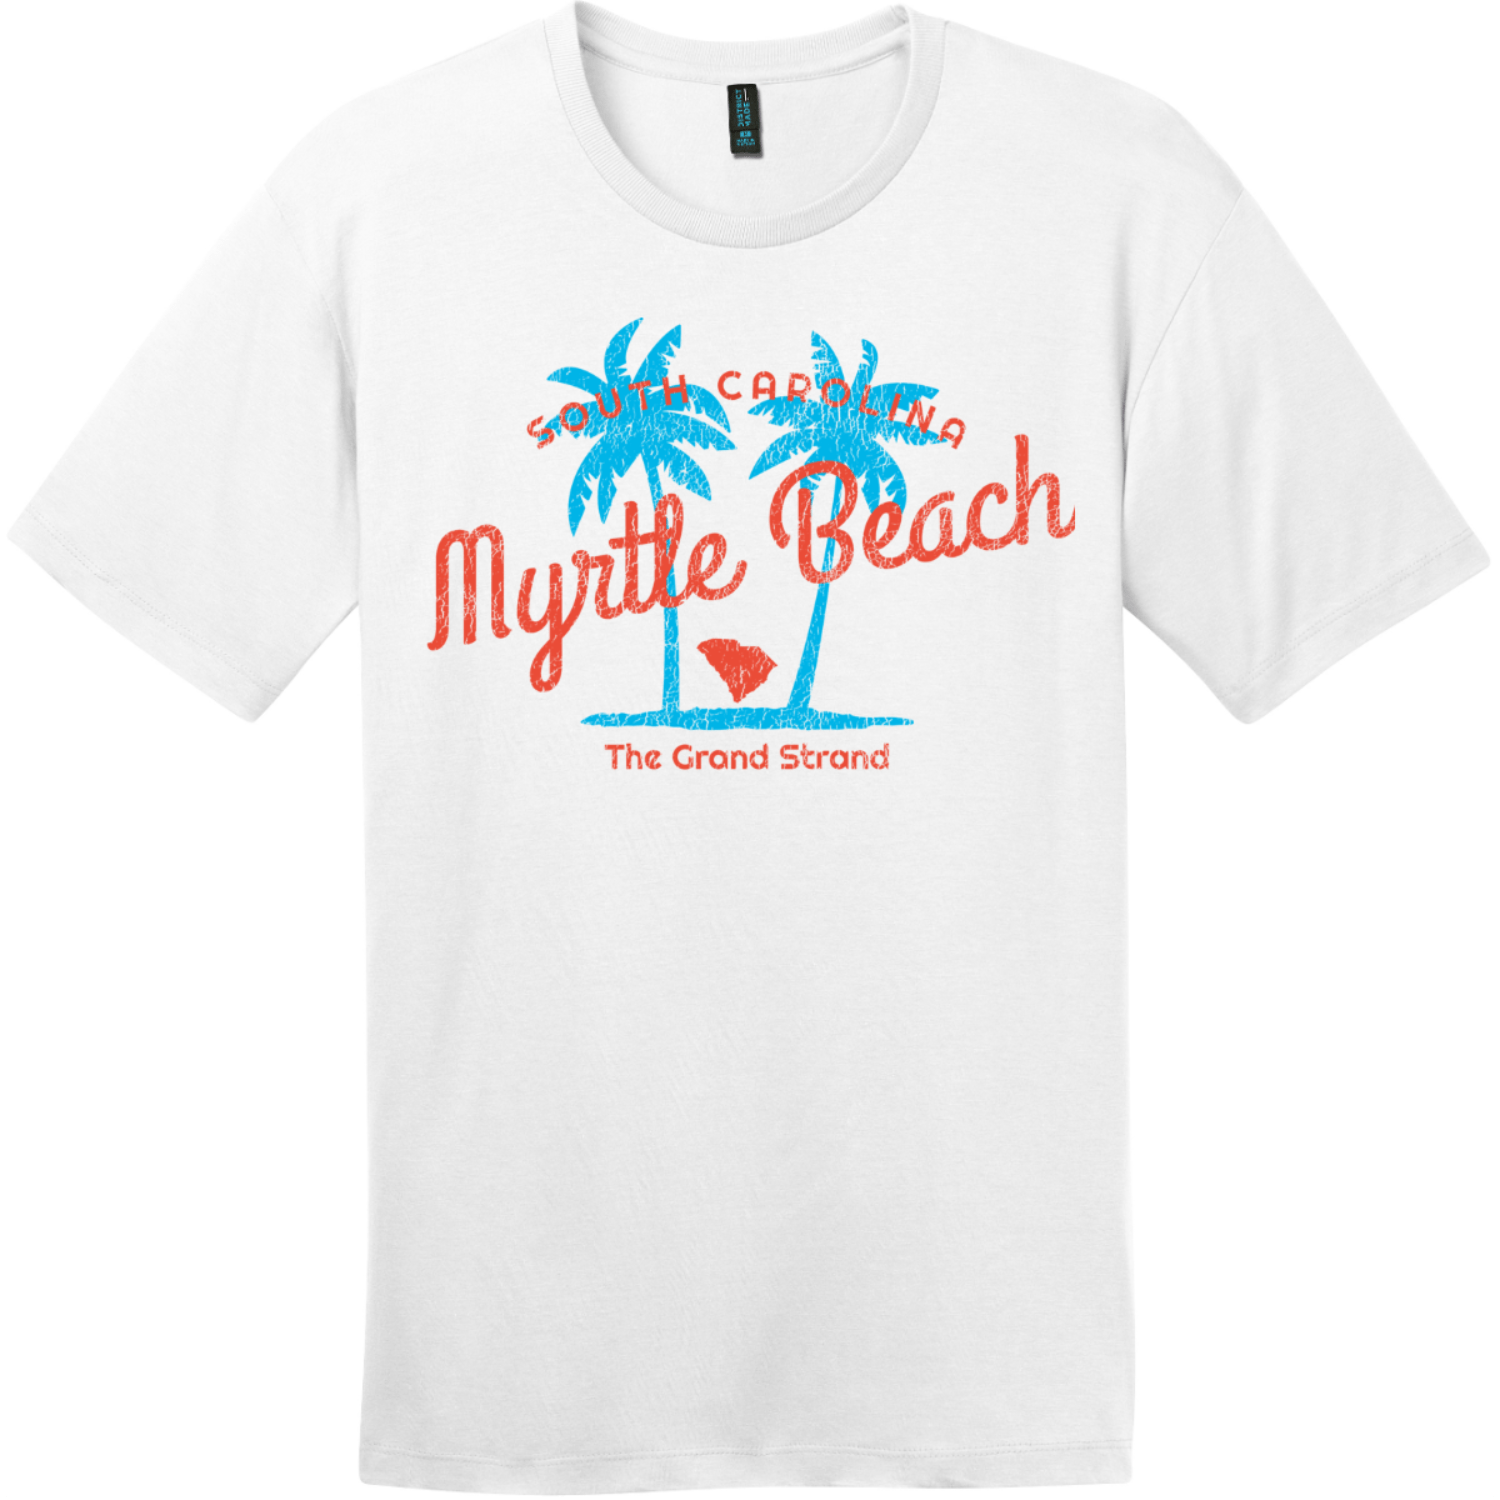 Myrtle Beach The Grand Strand T-Shirt Bright White District Perfect Weight Tee DT104